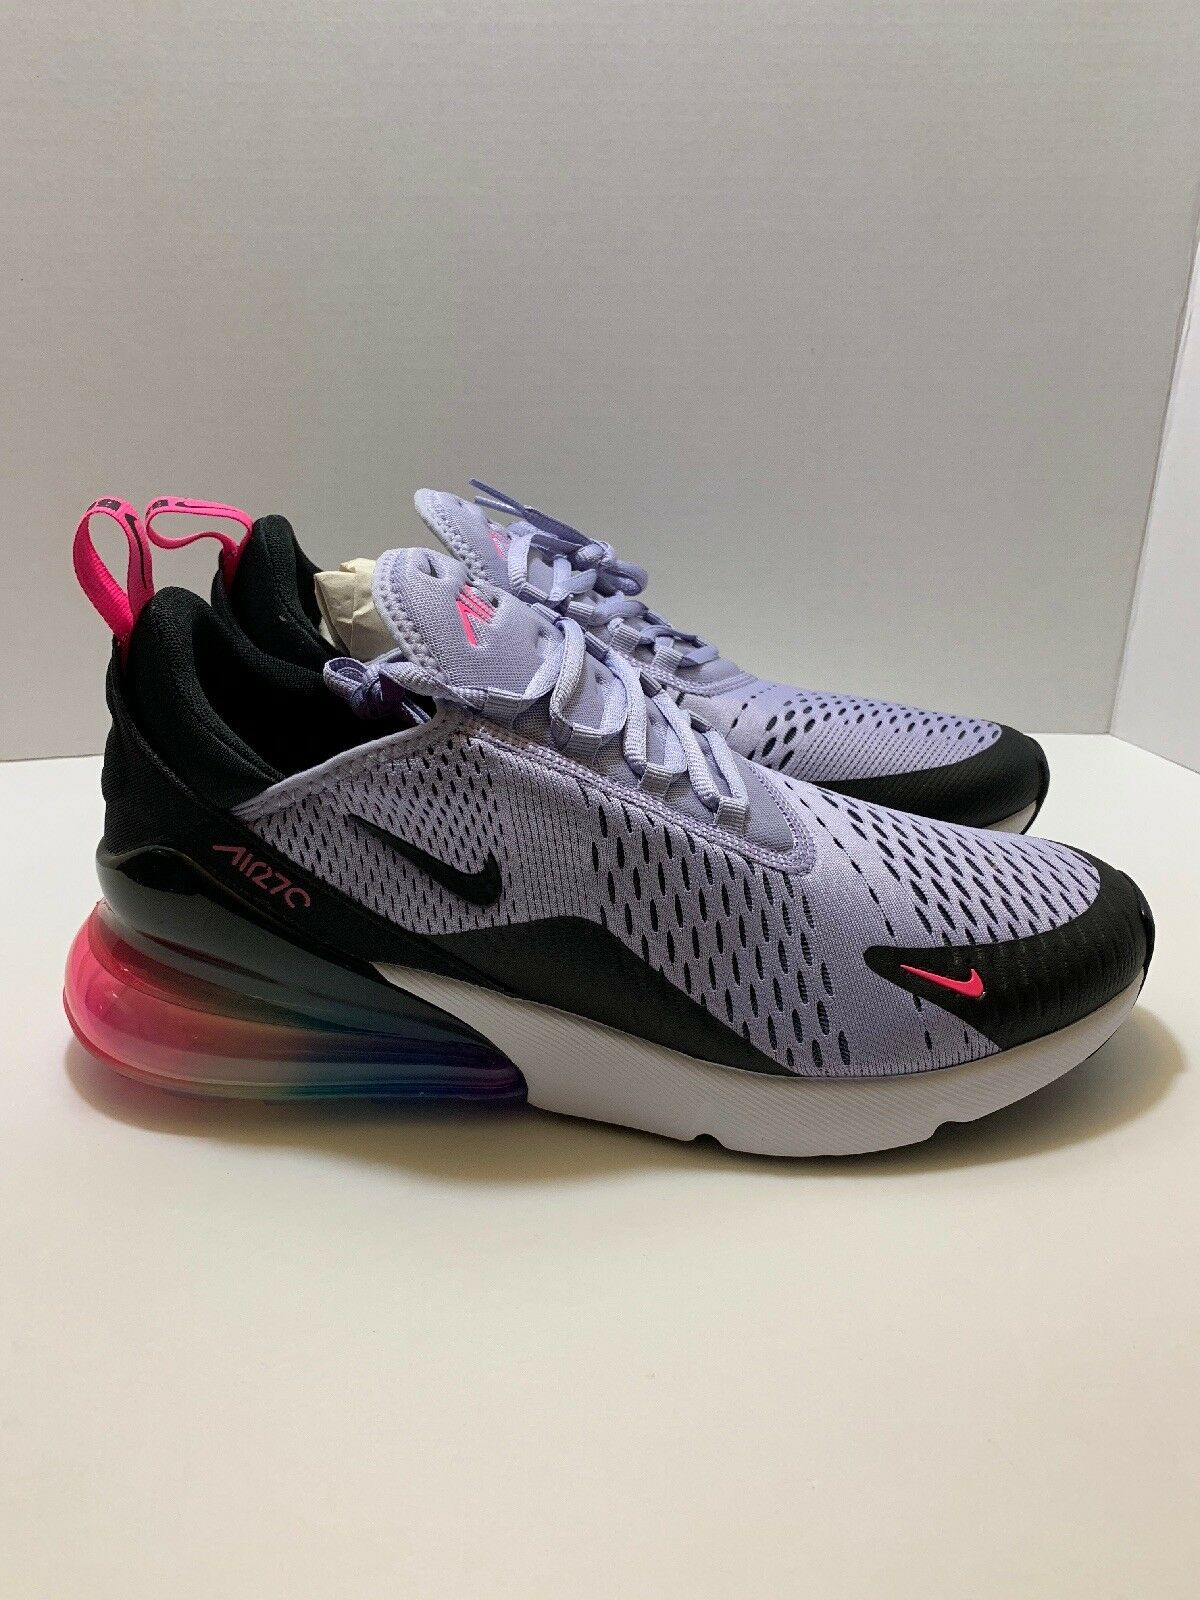 NEW Men's Nike Air Max 270  BE TRUE   Multi-color AR0344-500 Brand New size 10.5